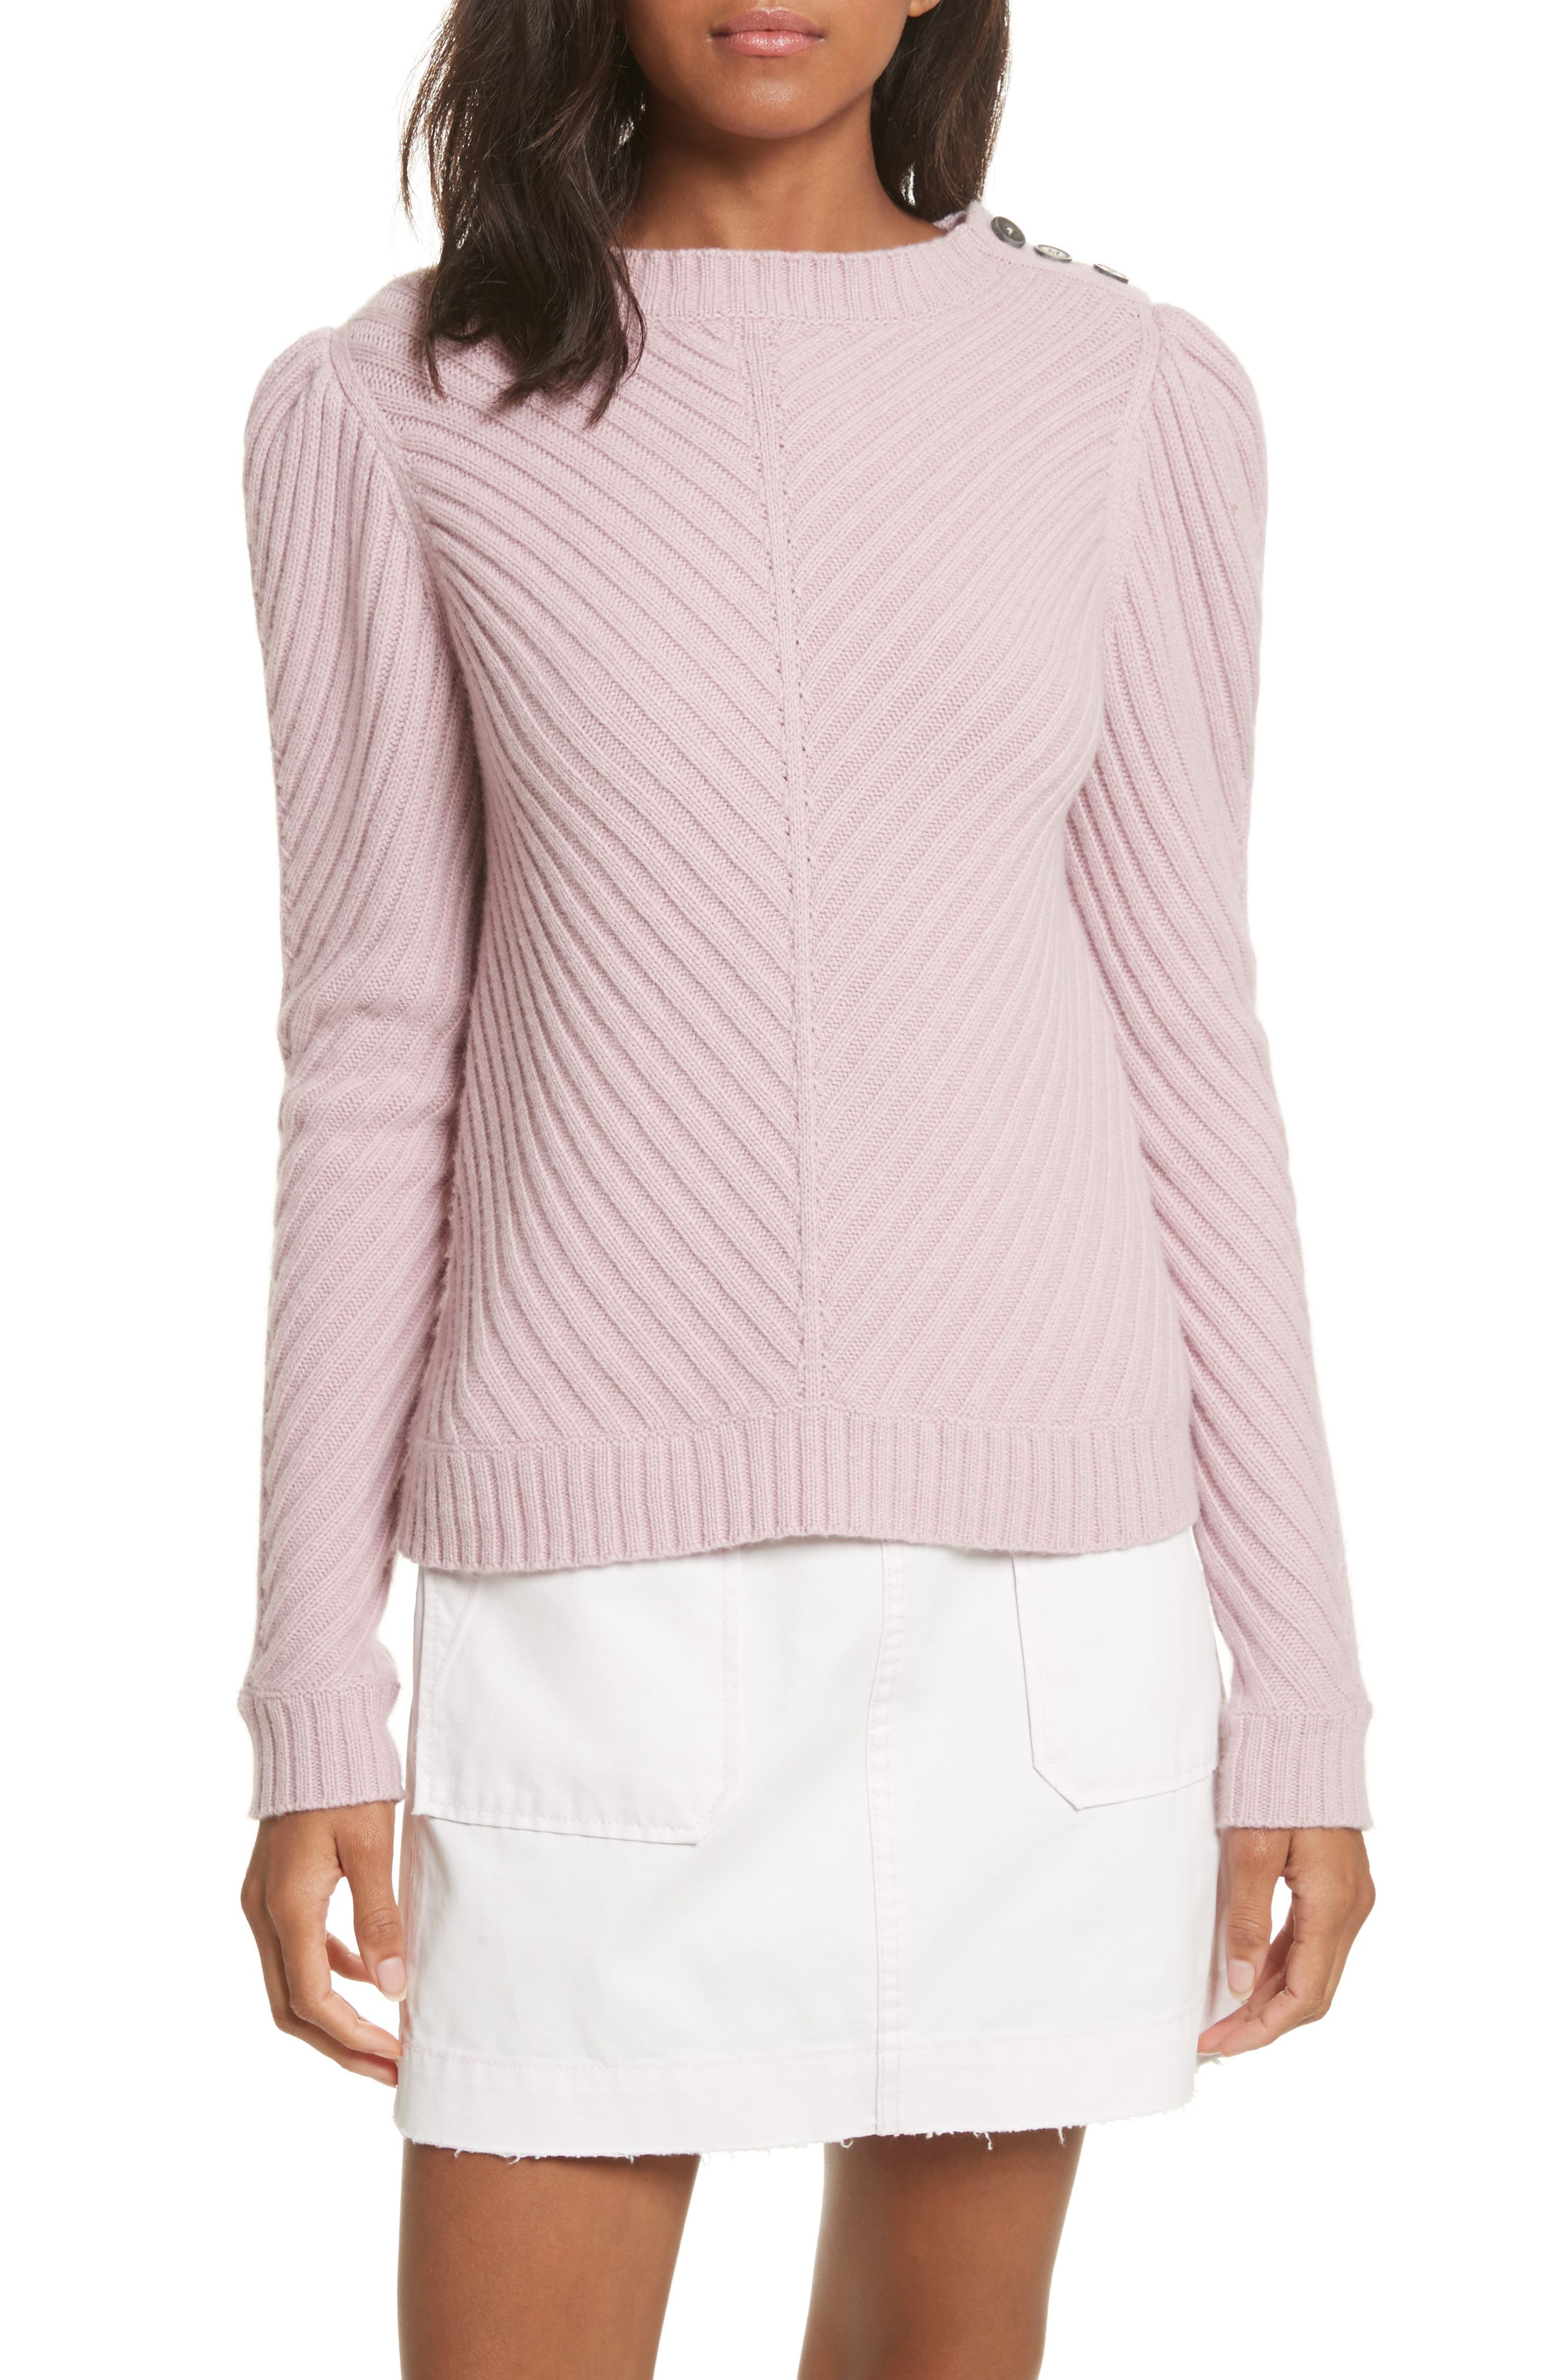 Alternate Image 1 Selected - La Vie Rebecca Taylor Ribbed Knit Pullover